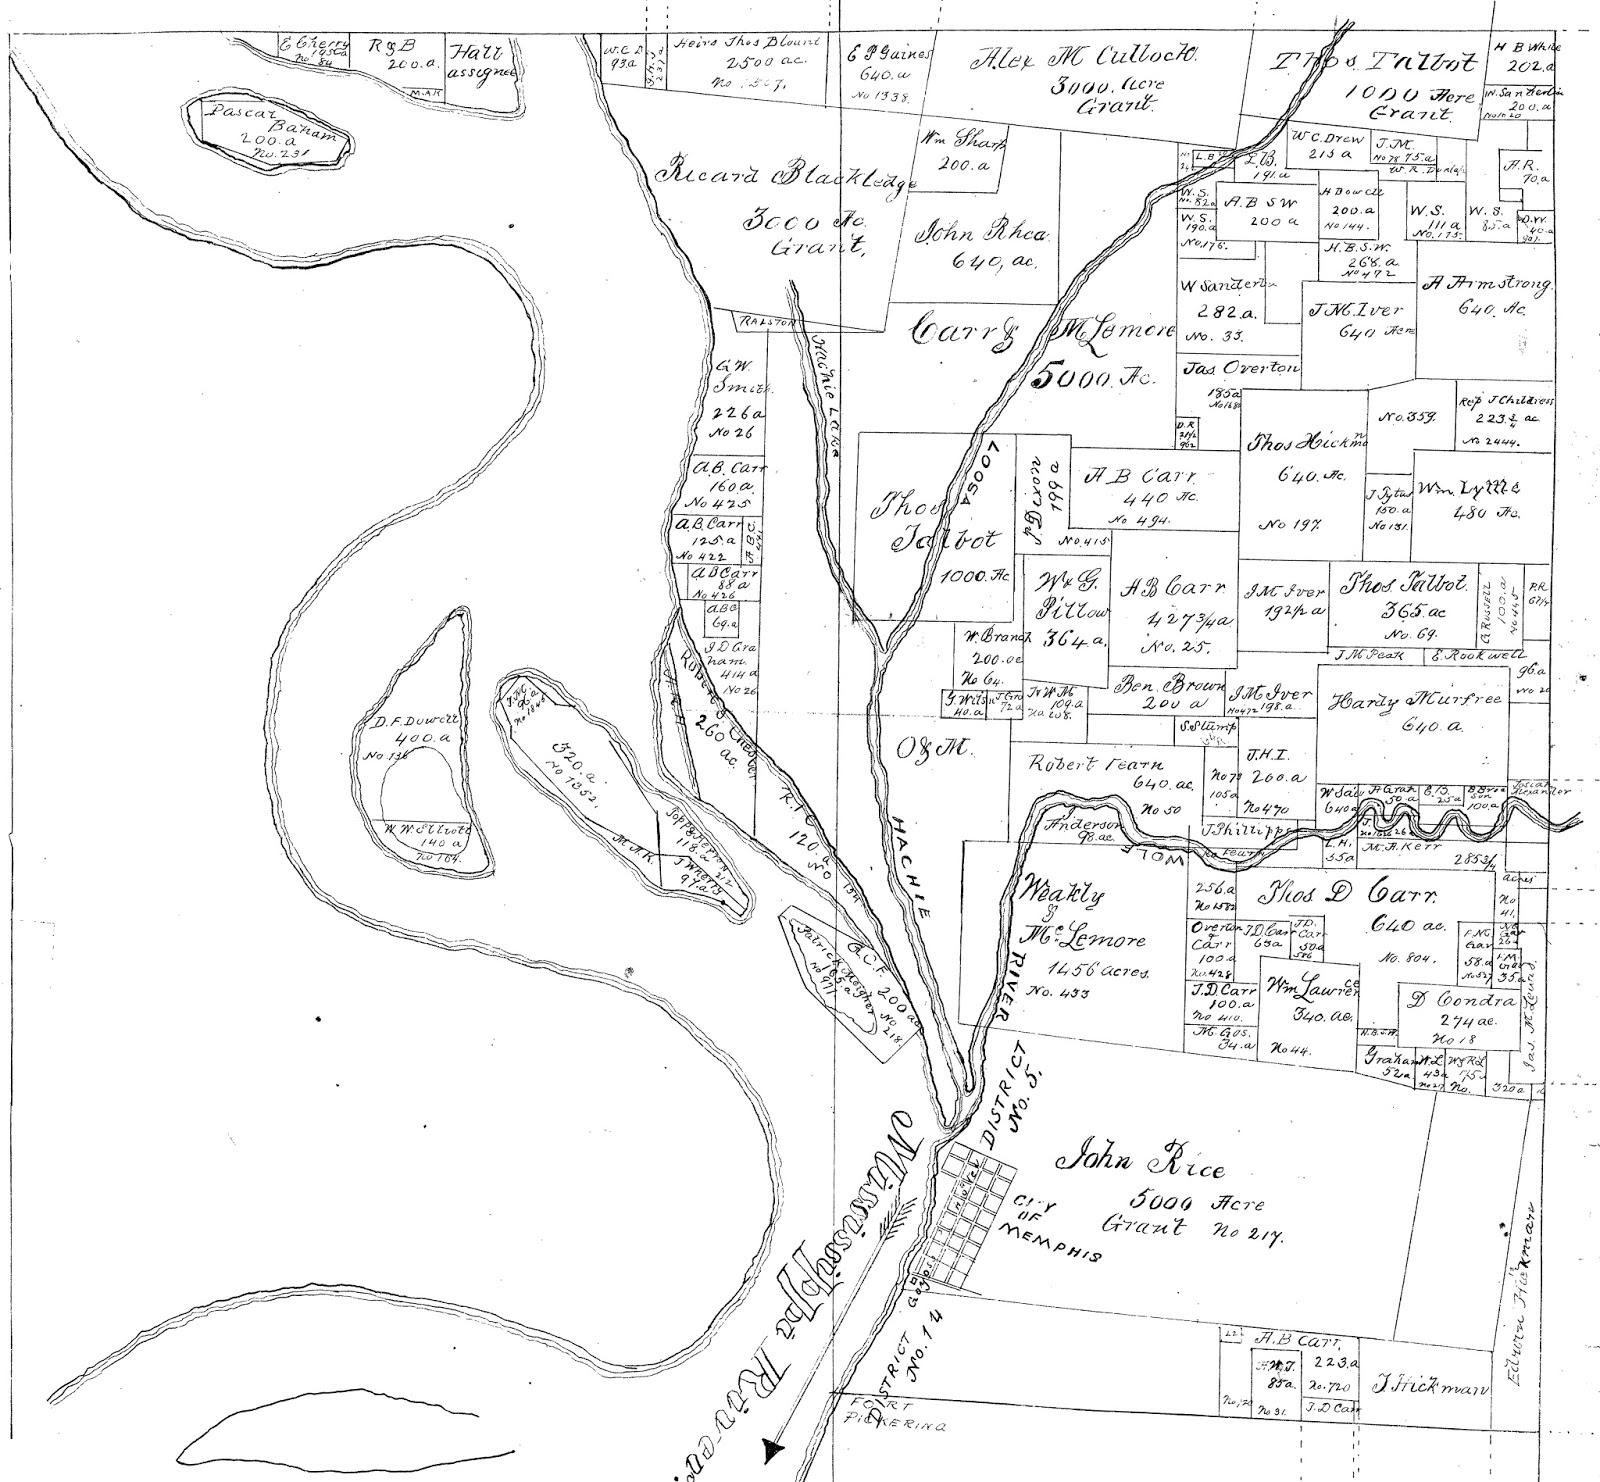 this old property ownership map from 1884 courtesy of the shelby county register of deeds shows an unnamed peninsula now known as